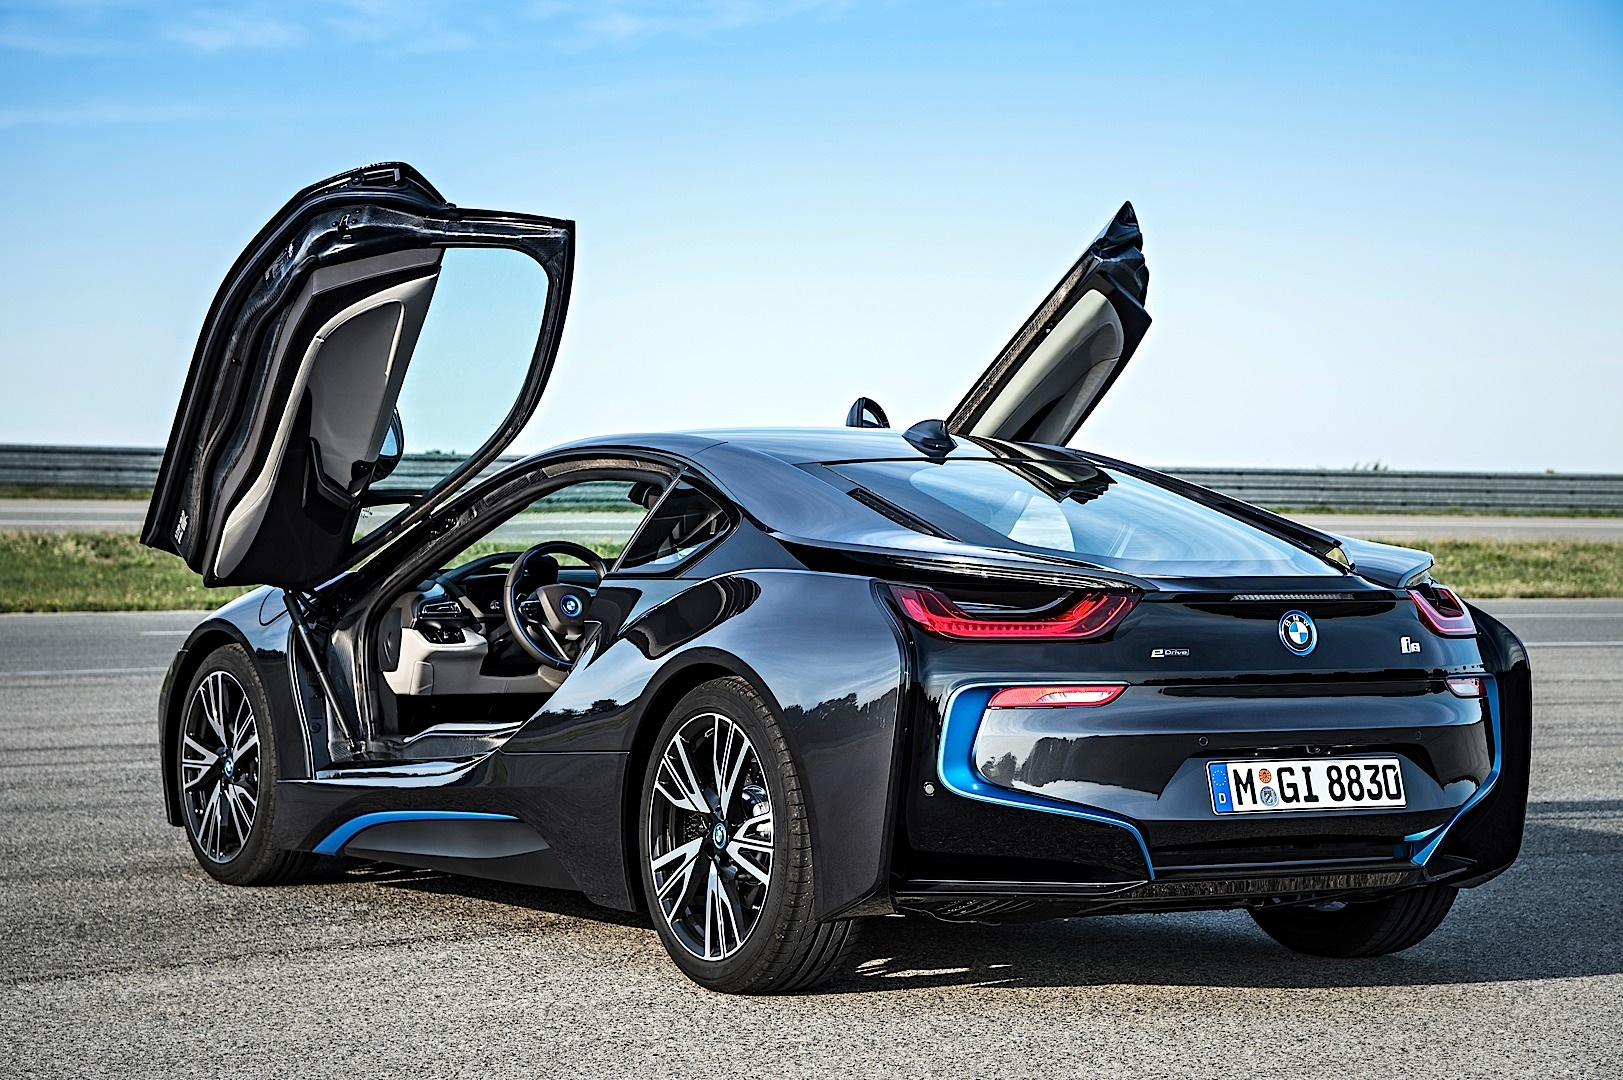 BMW i8 Is the World\'s First Car to Have Laser Headlights - autoevolution